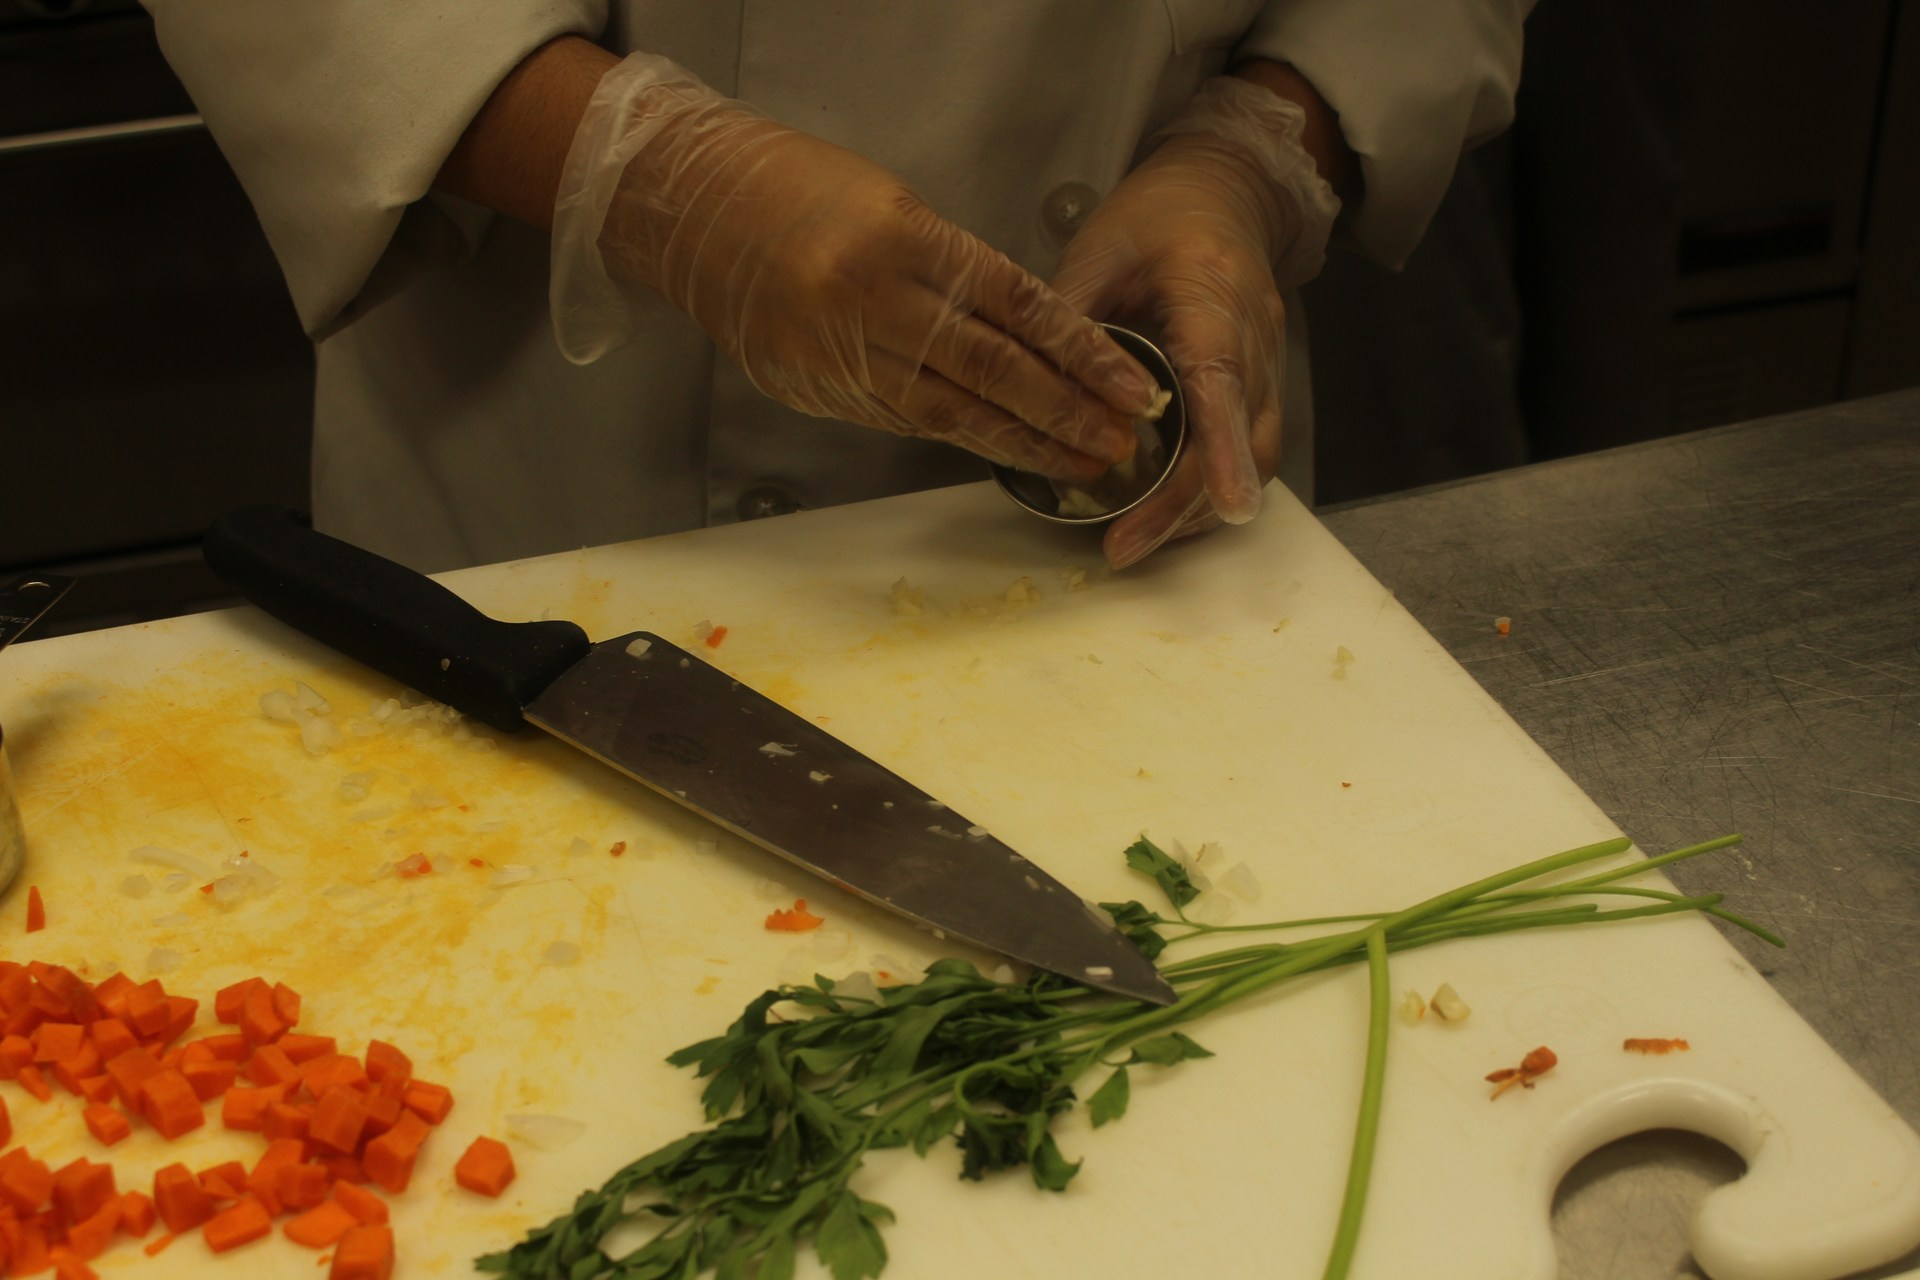 Practicing knife skills by chopping vegetables